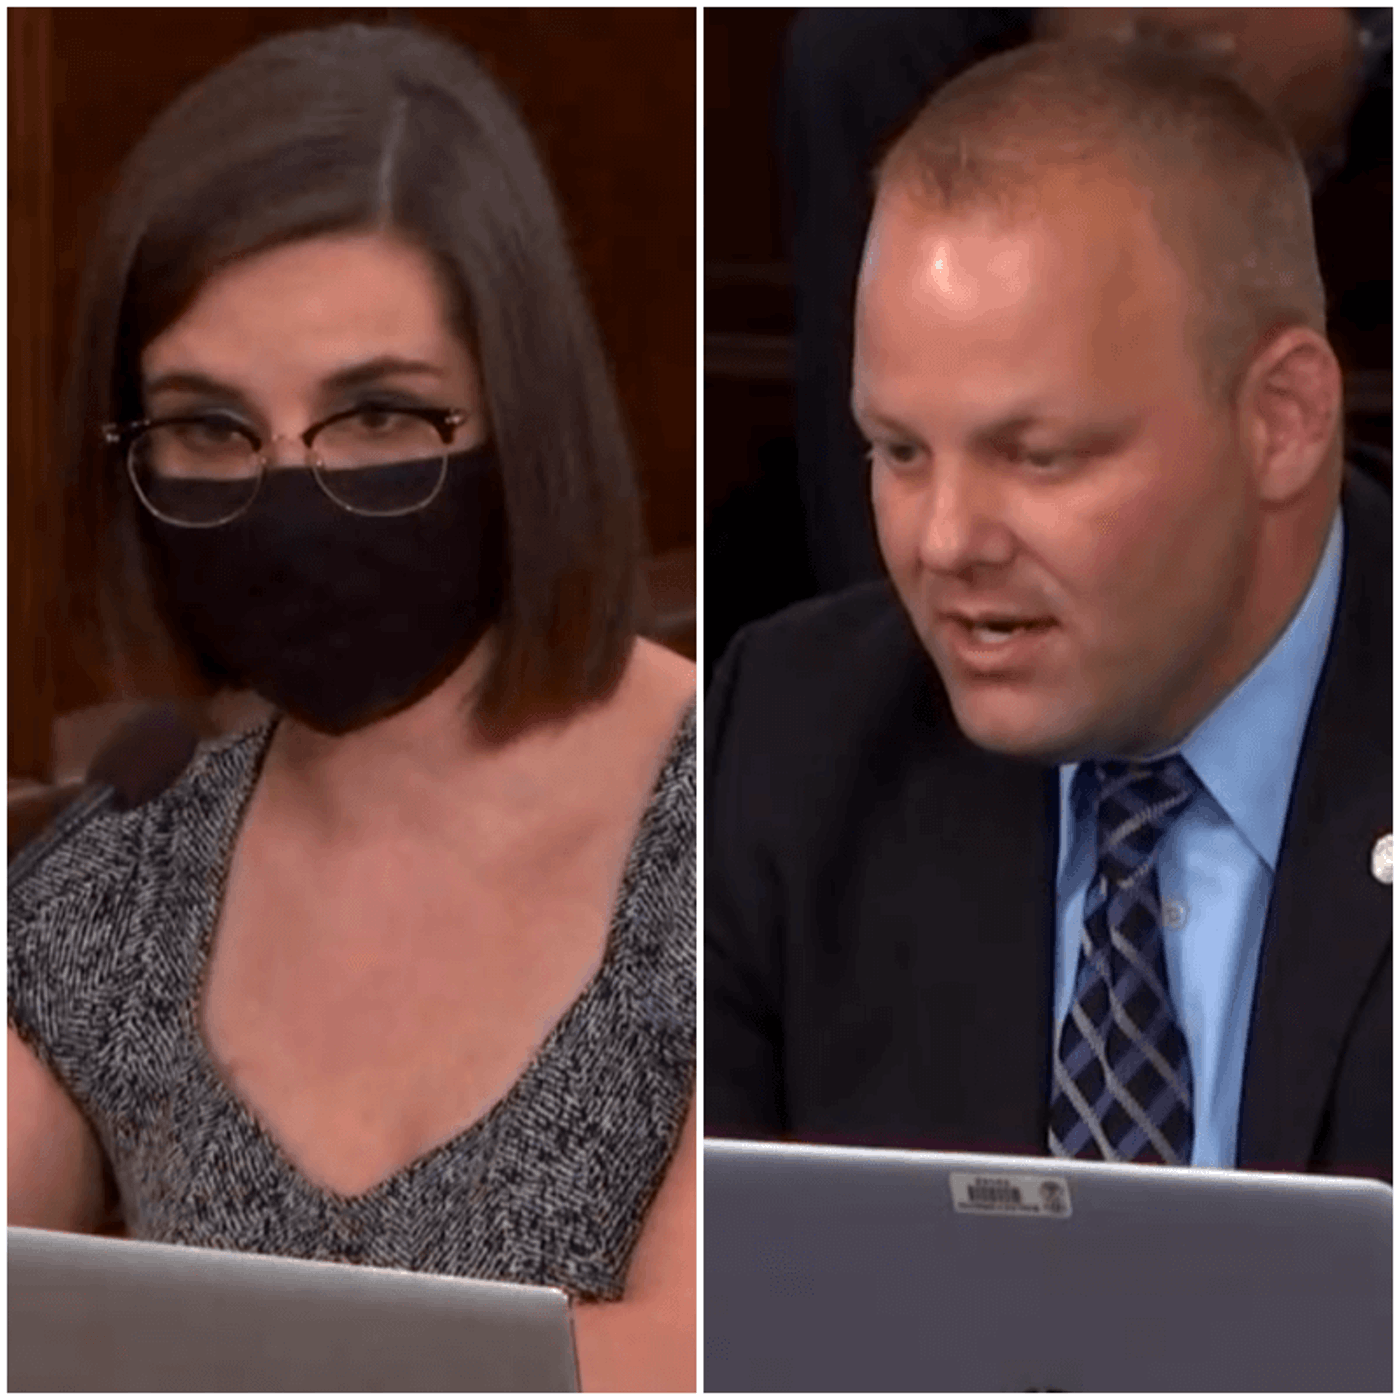 Reps. Laurie Pohutsky and Ryan Berman discussing the state of nursing homes during the pandemic. Photos via MI House TV.